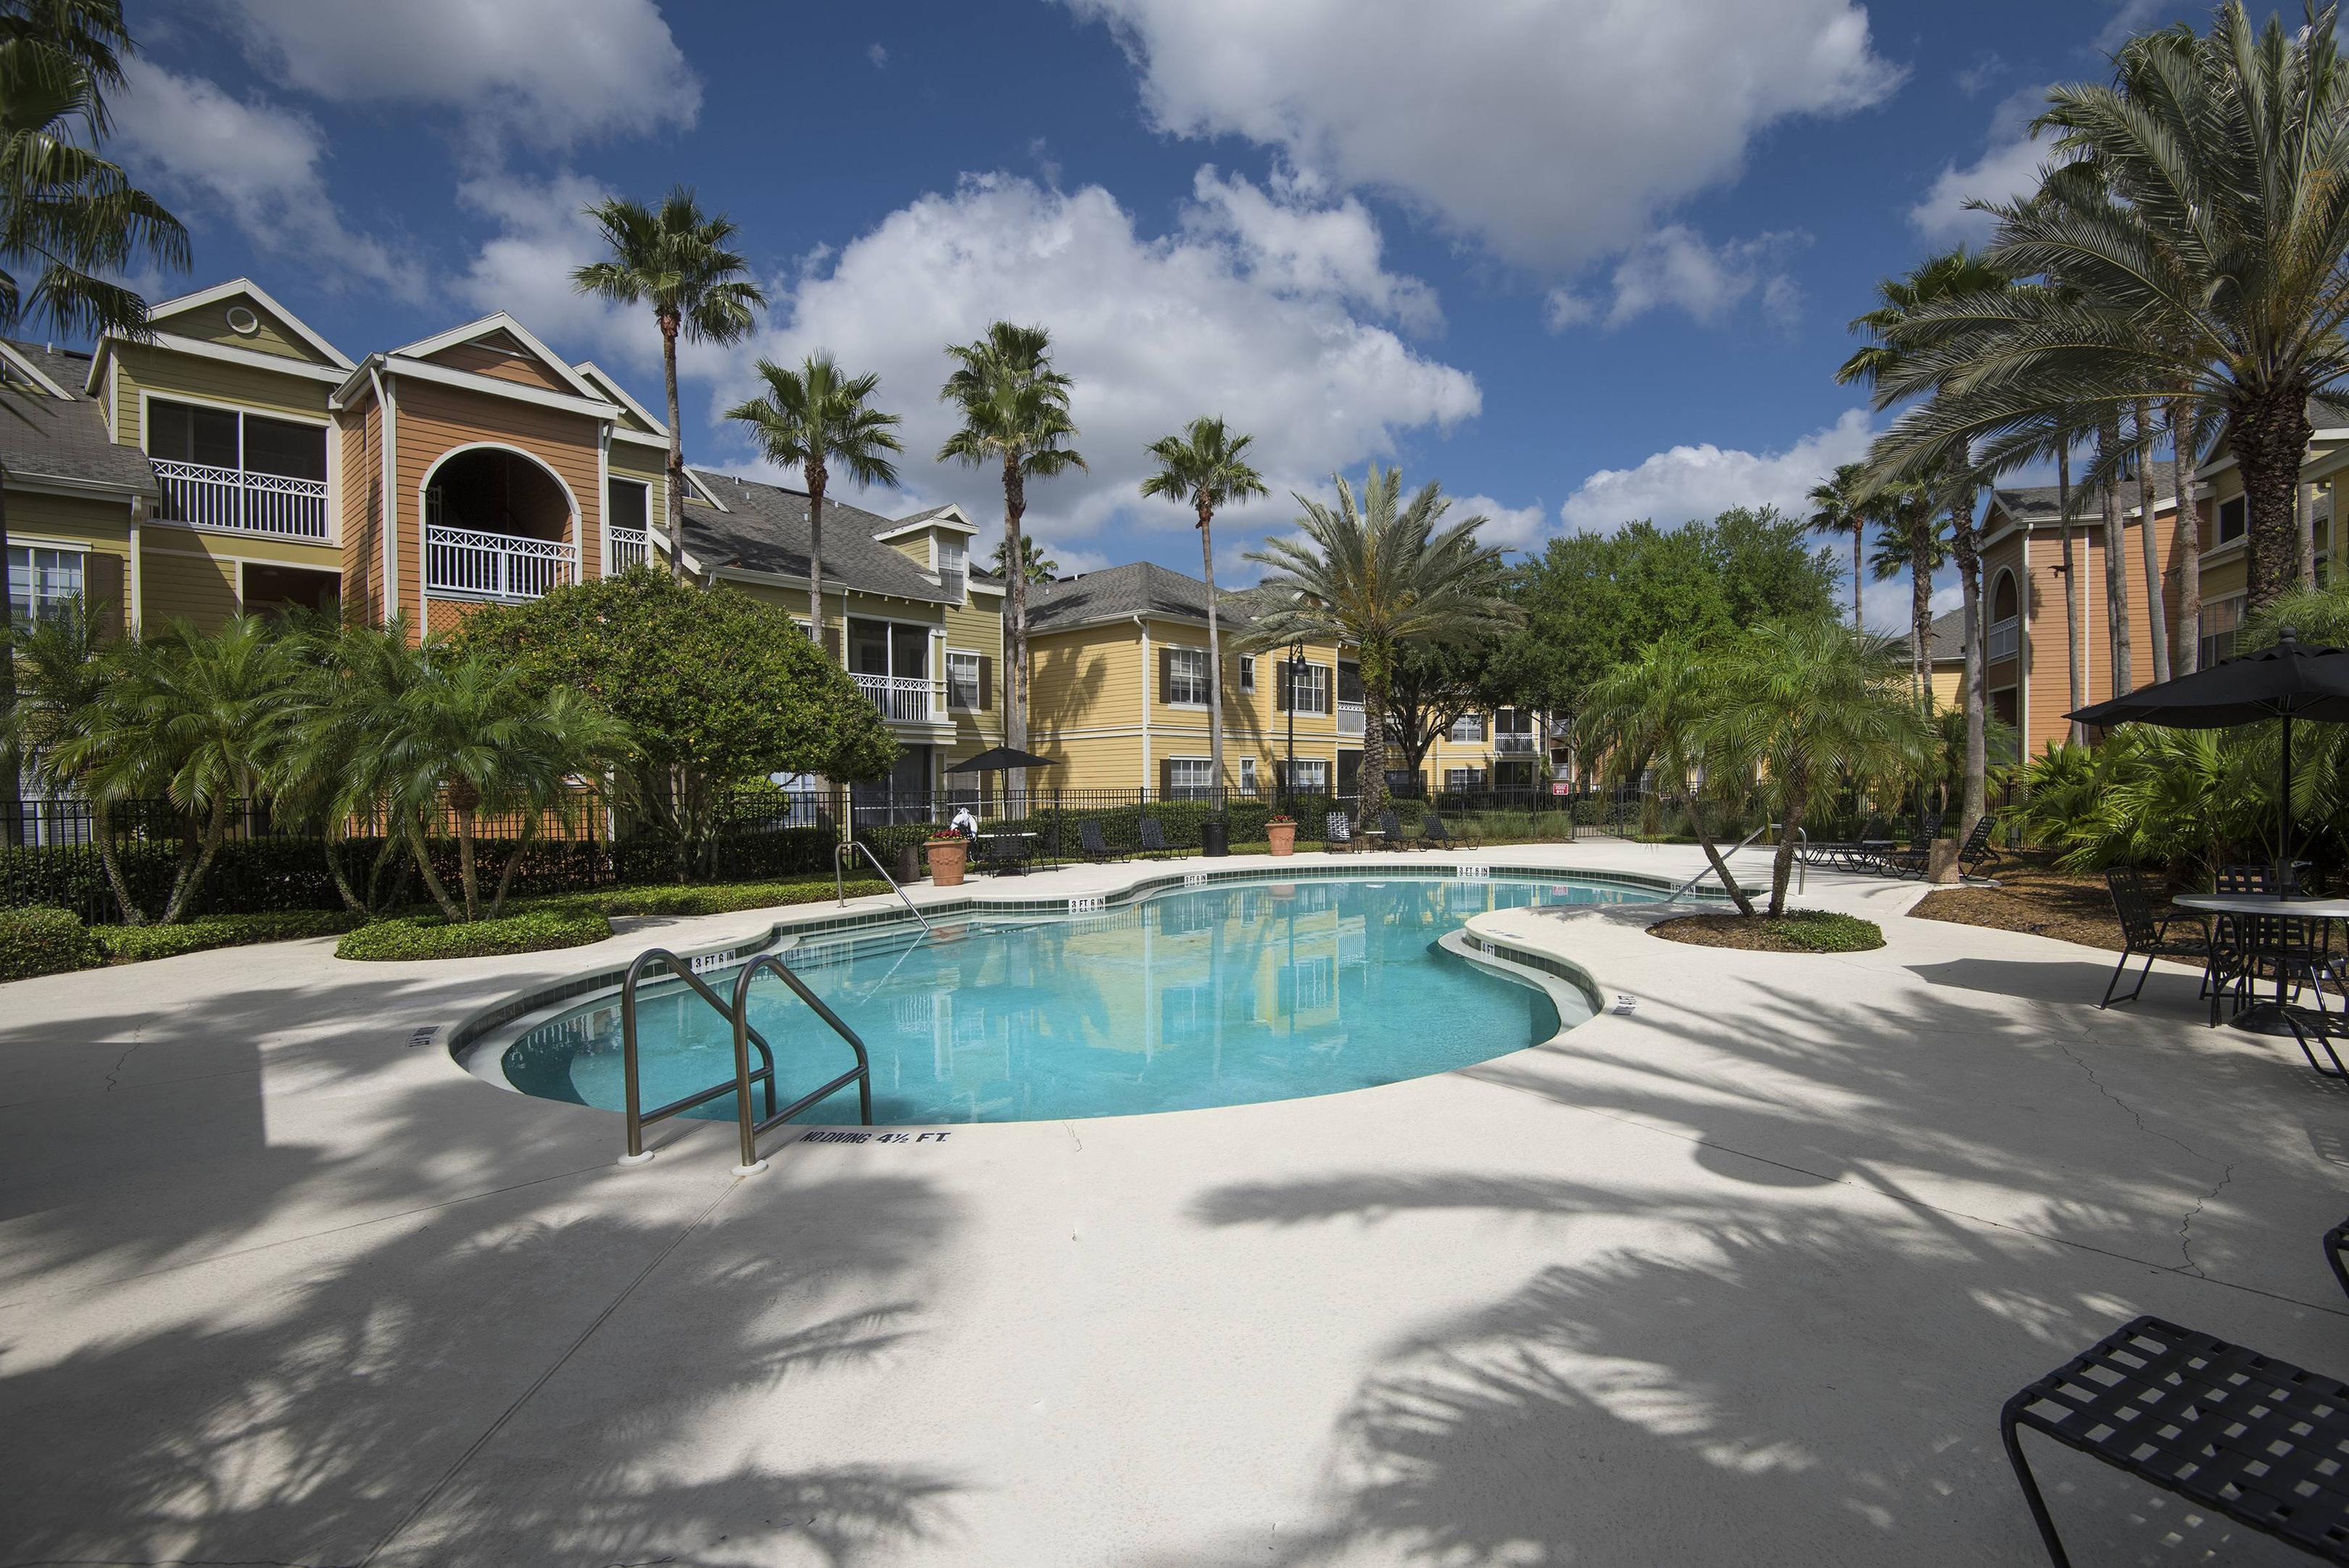 20 Best Apartments In Millenia Orlando FL with pics